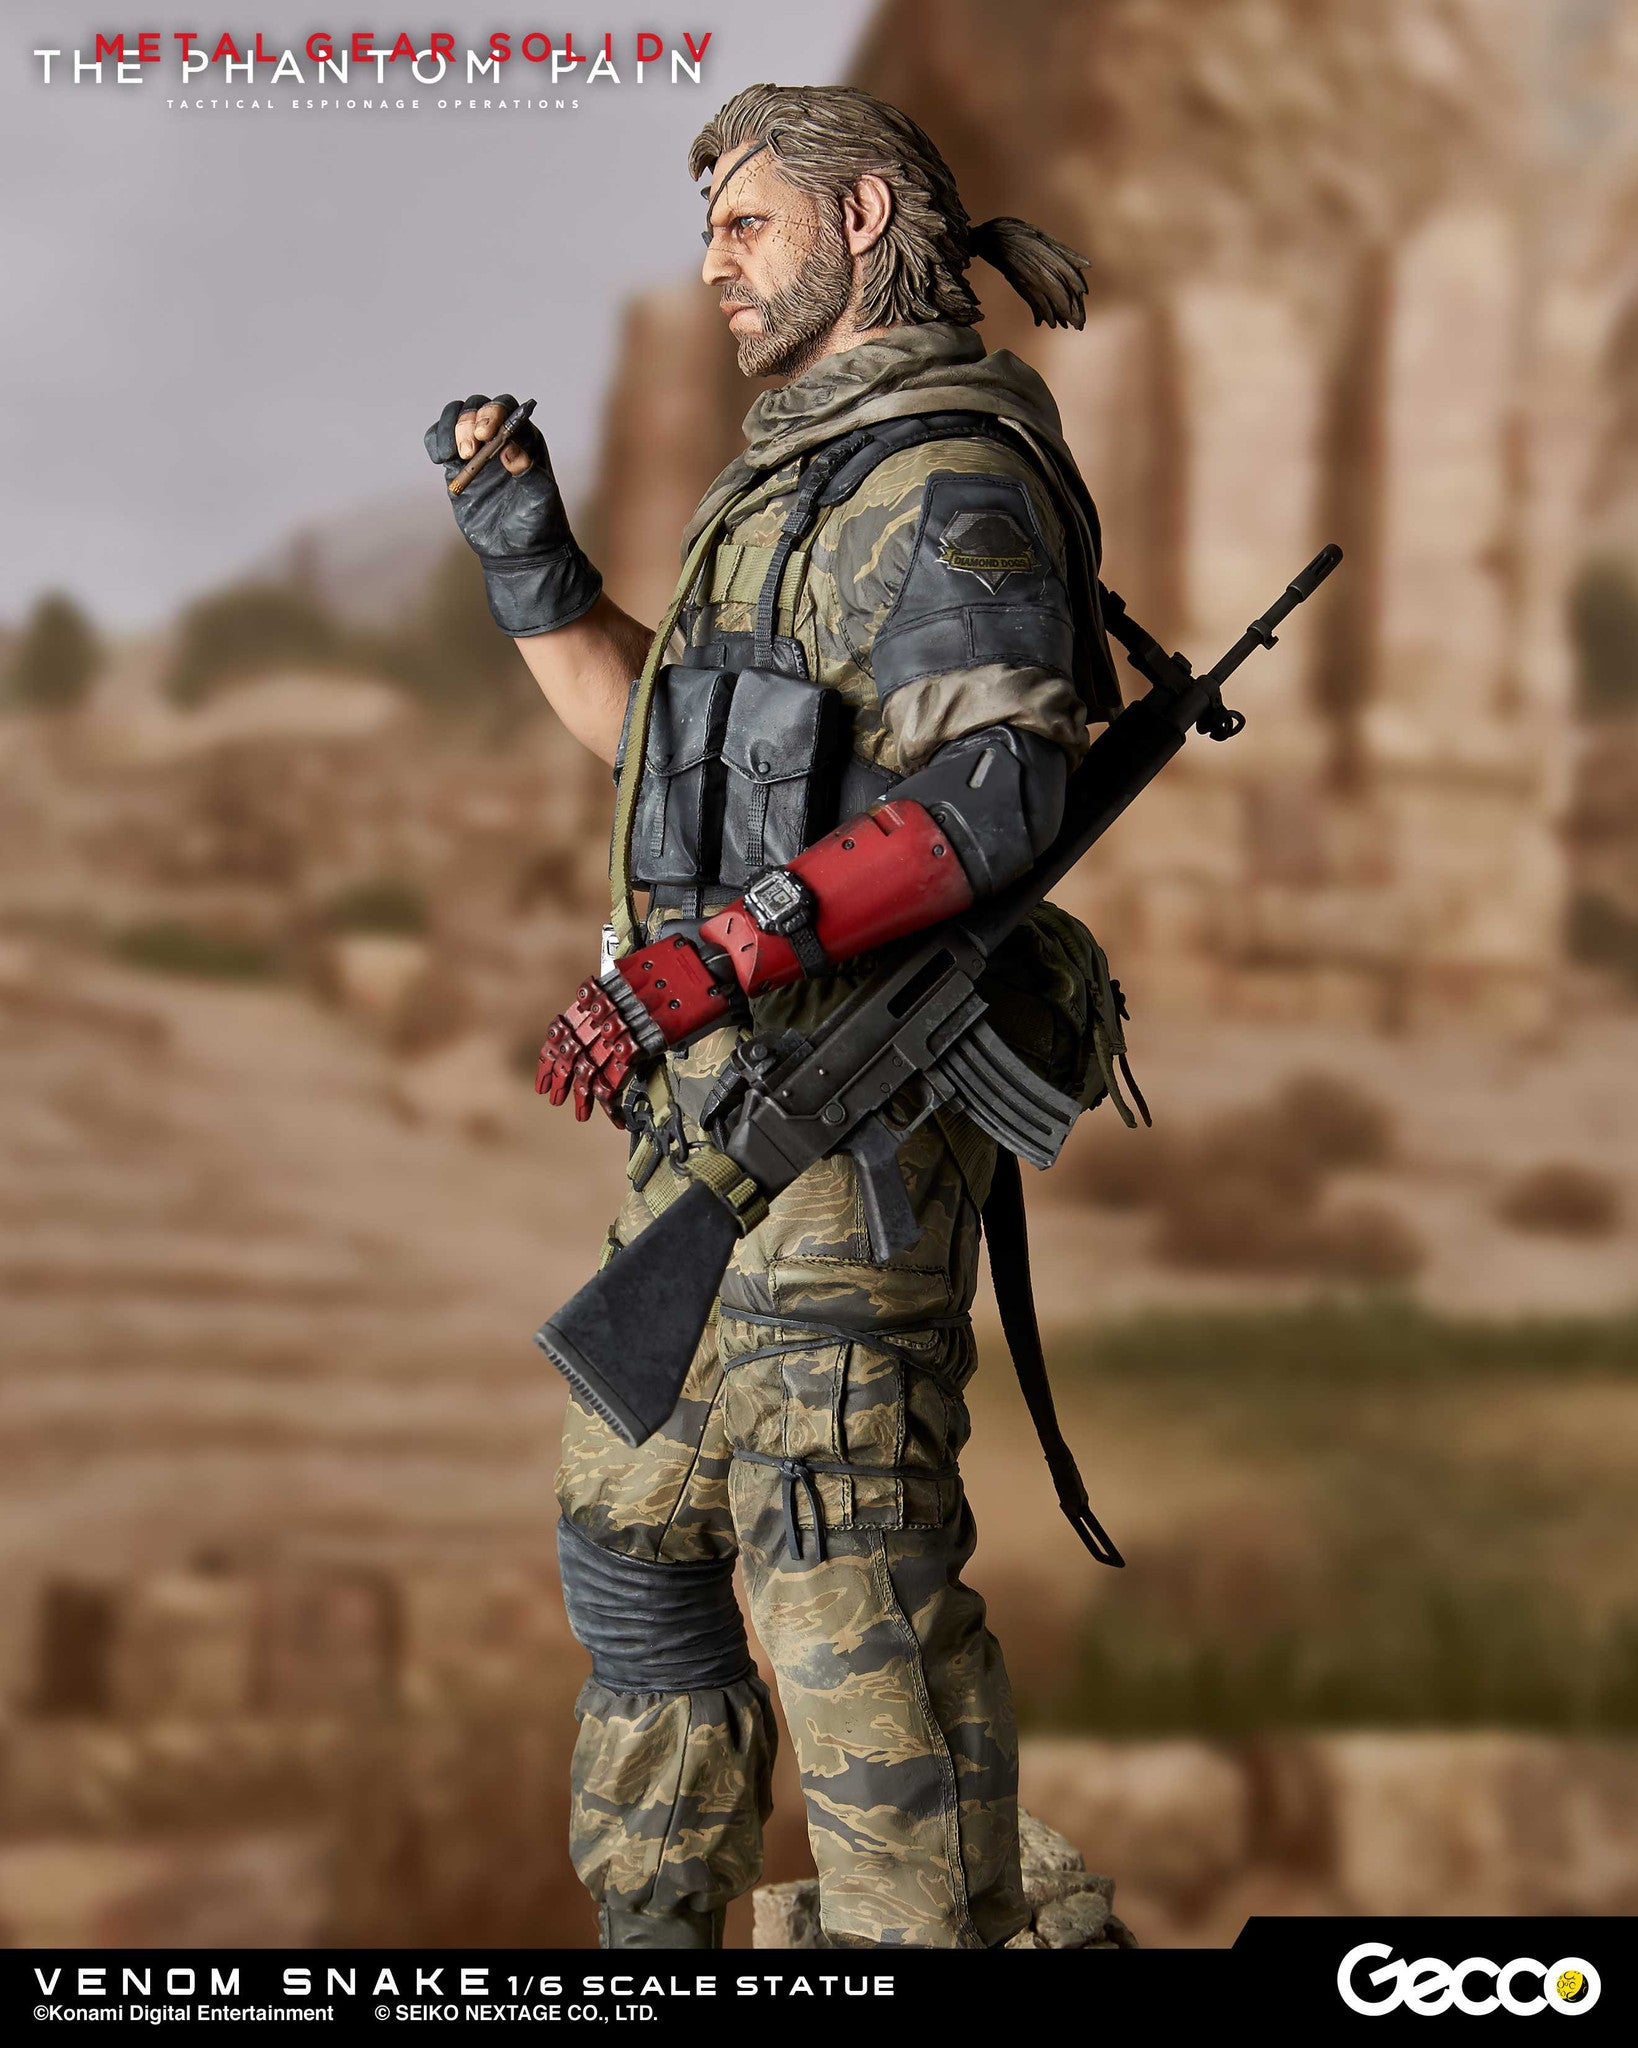 Gecco - Metal Gear Solid V: The Phantom Pain - Venom Snake 1/6 Scale Statue - Marvelous Toys - 4